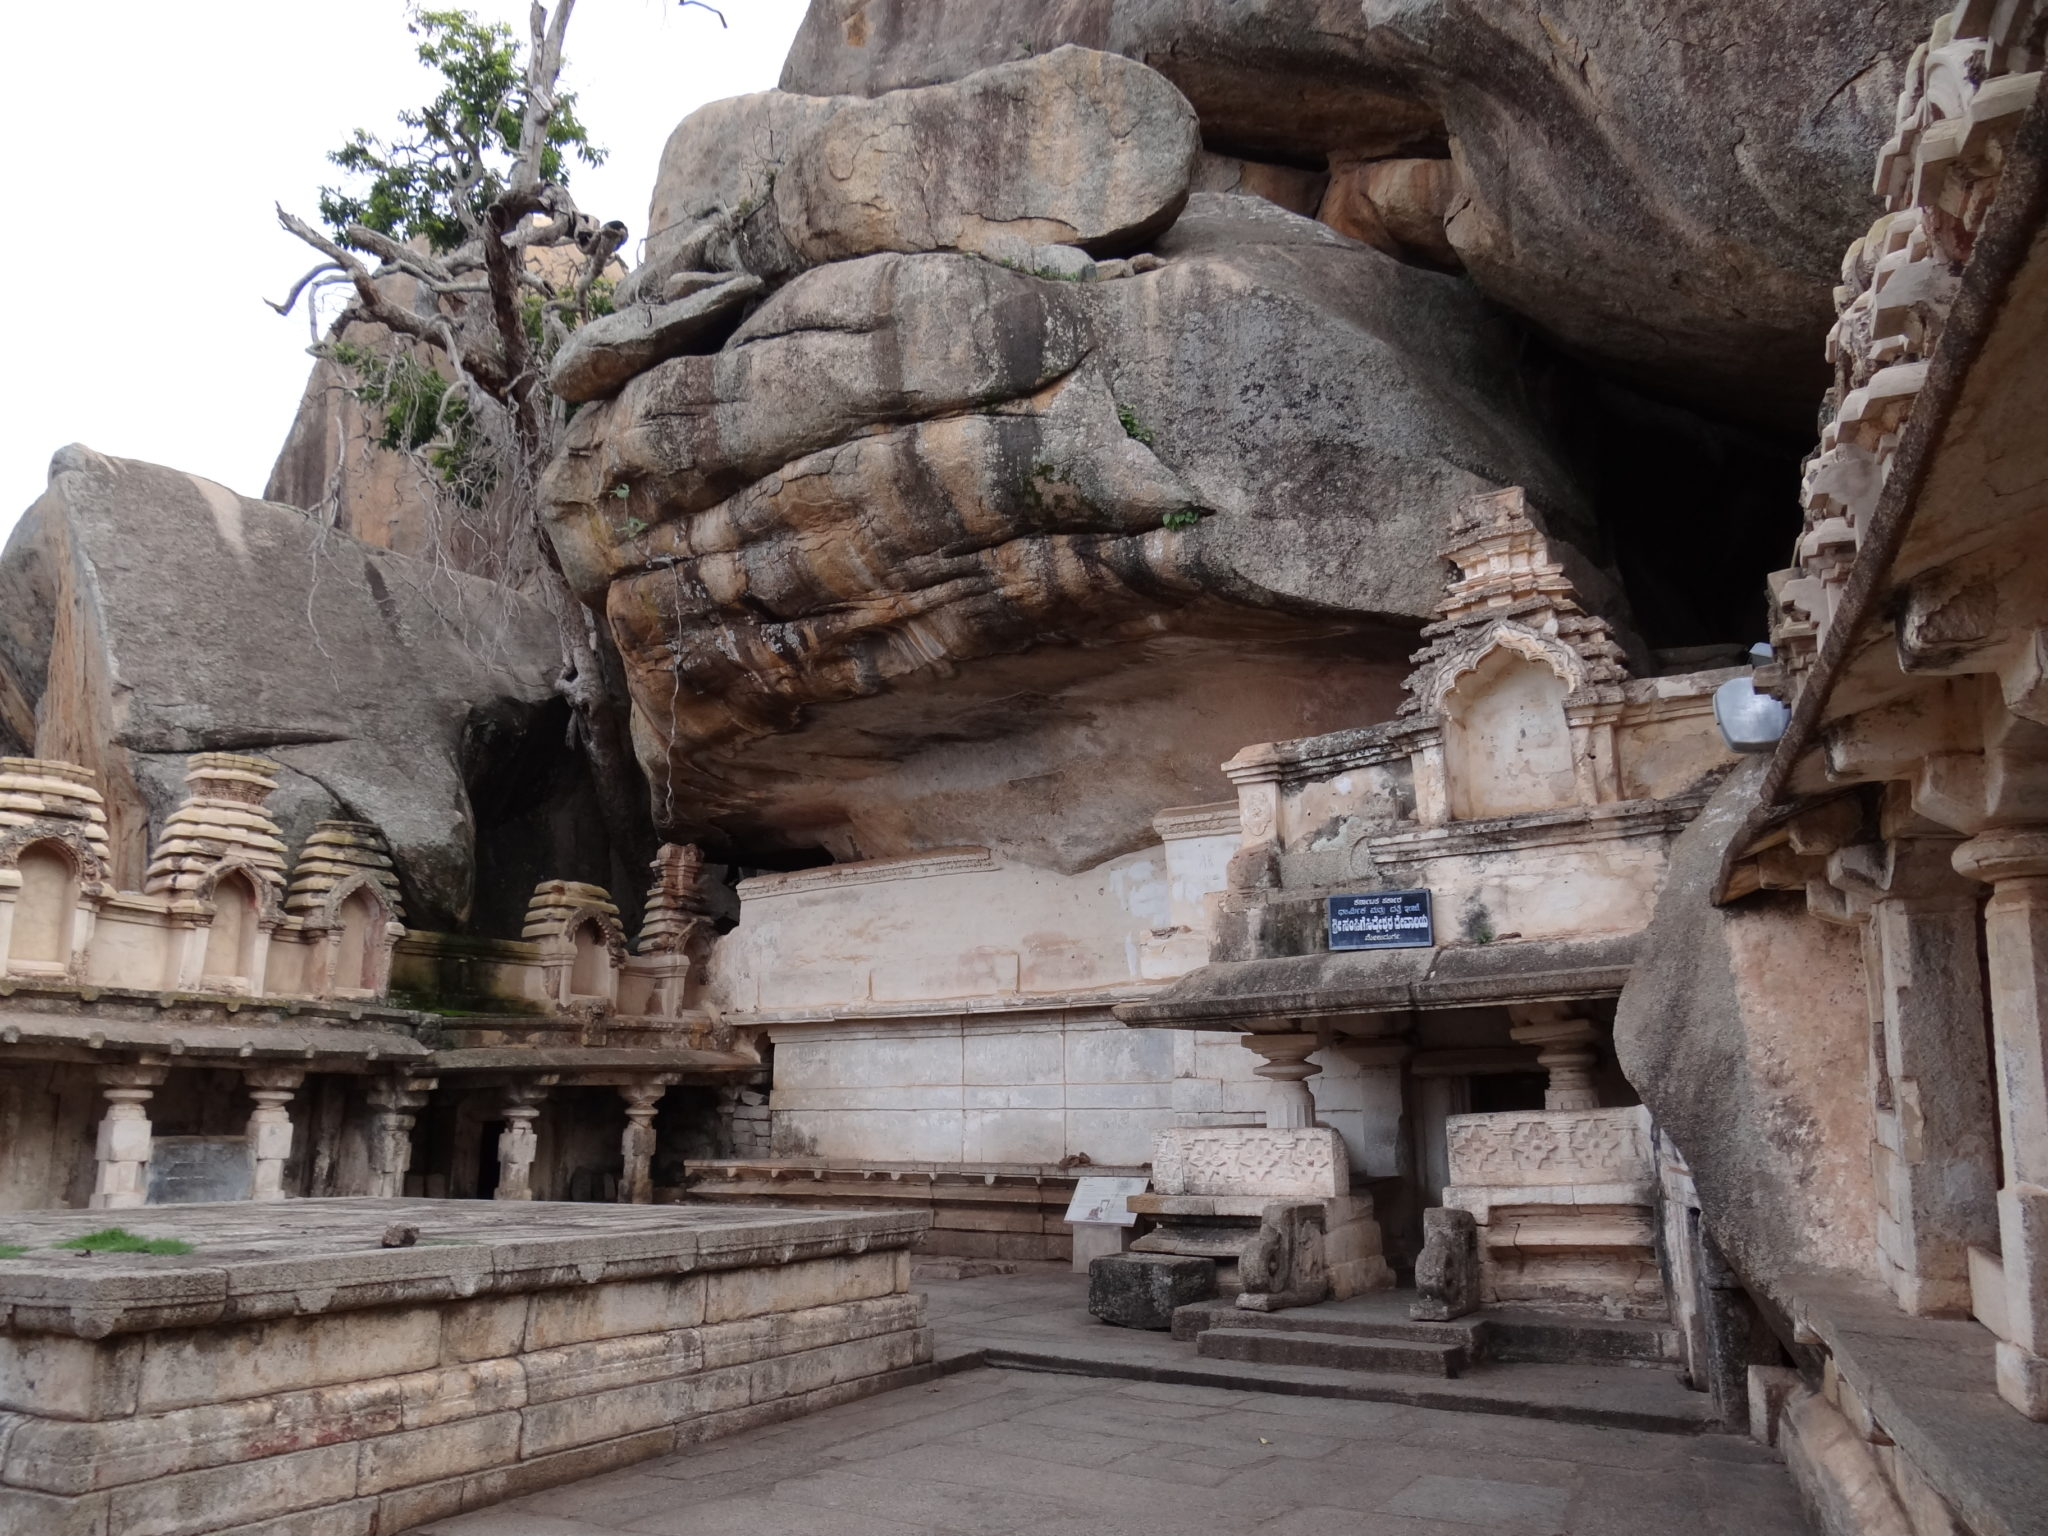 Rock carved temple under the benevolent shadow of boulders